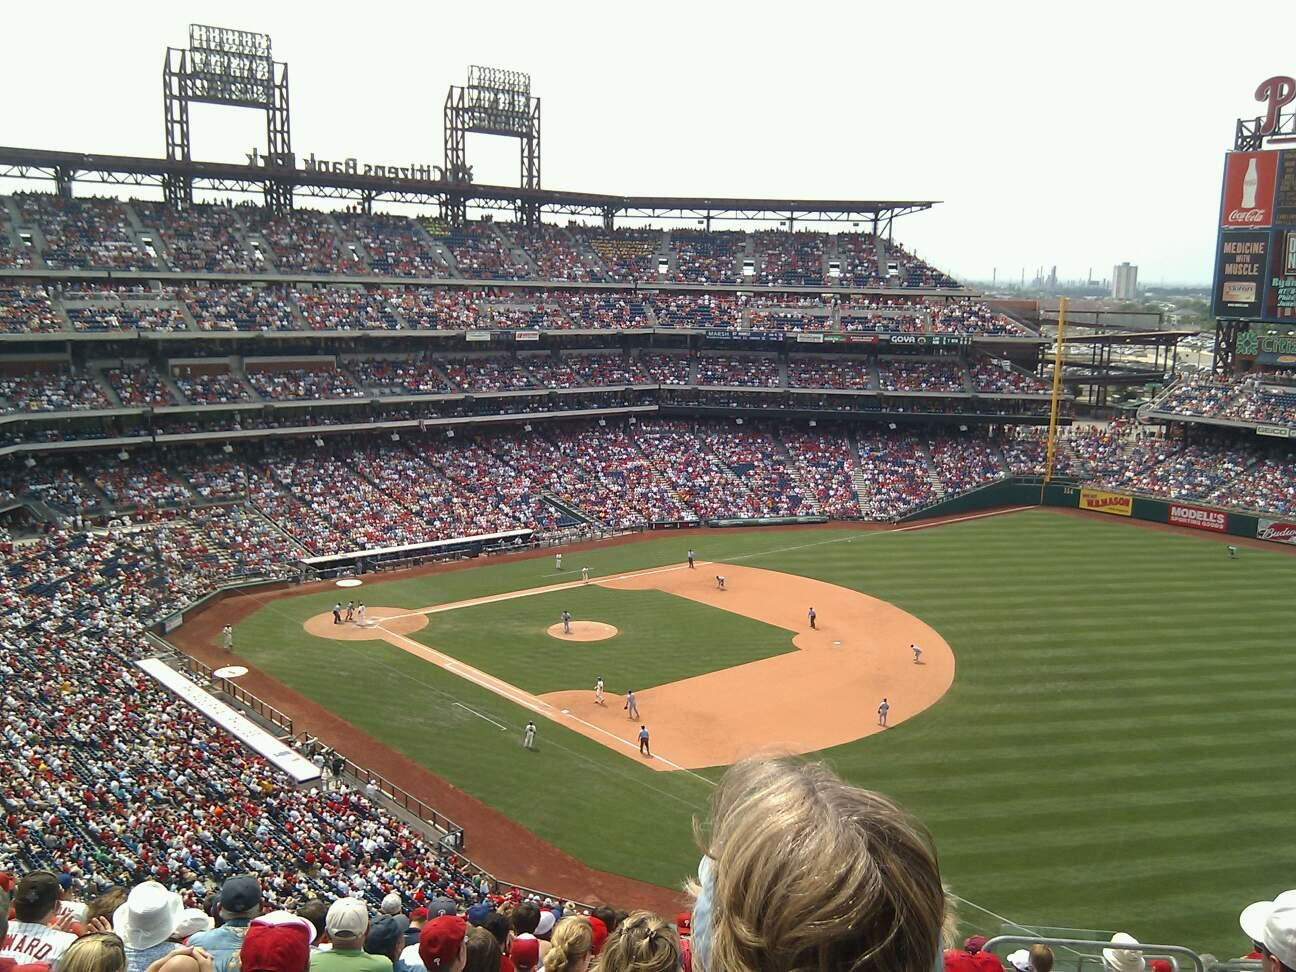 Citizens Bank Park Section 310 Row 15 Seat 6